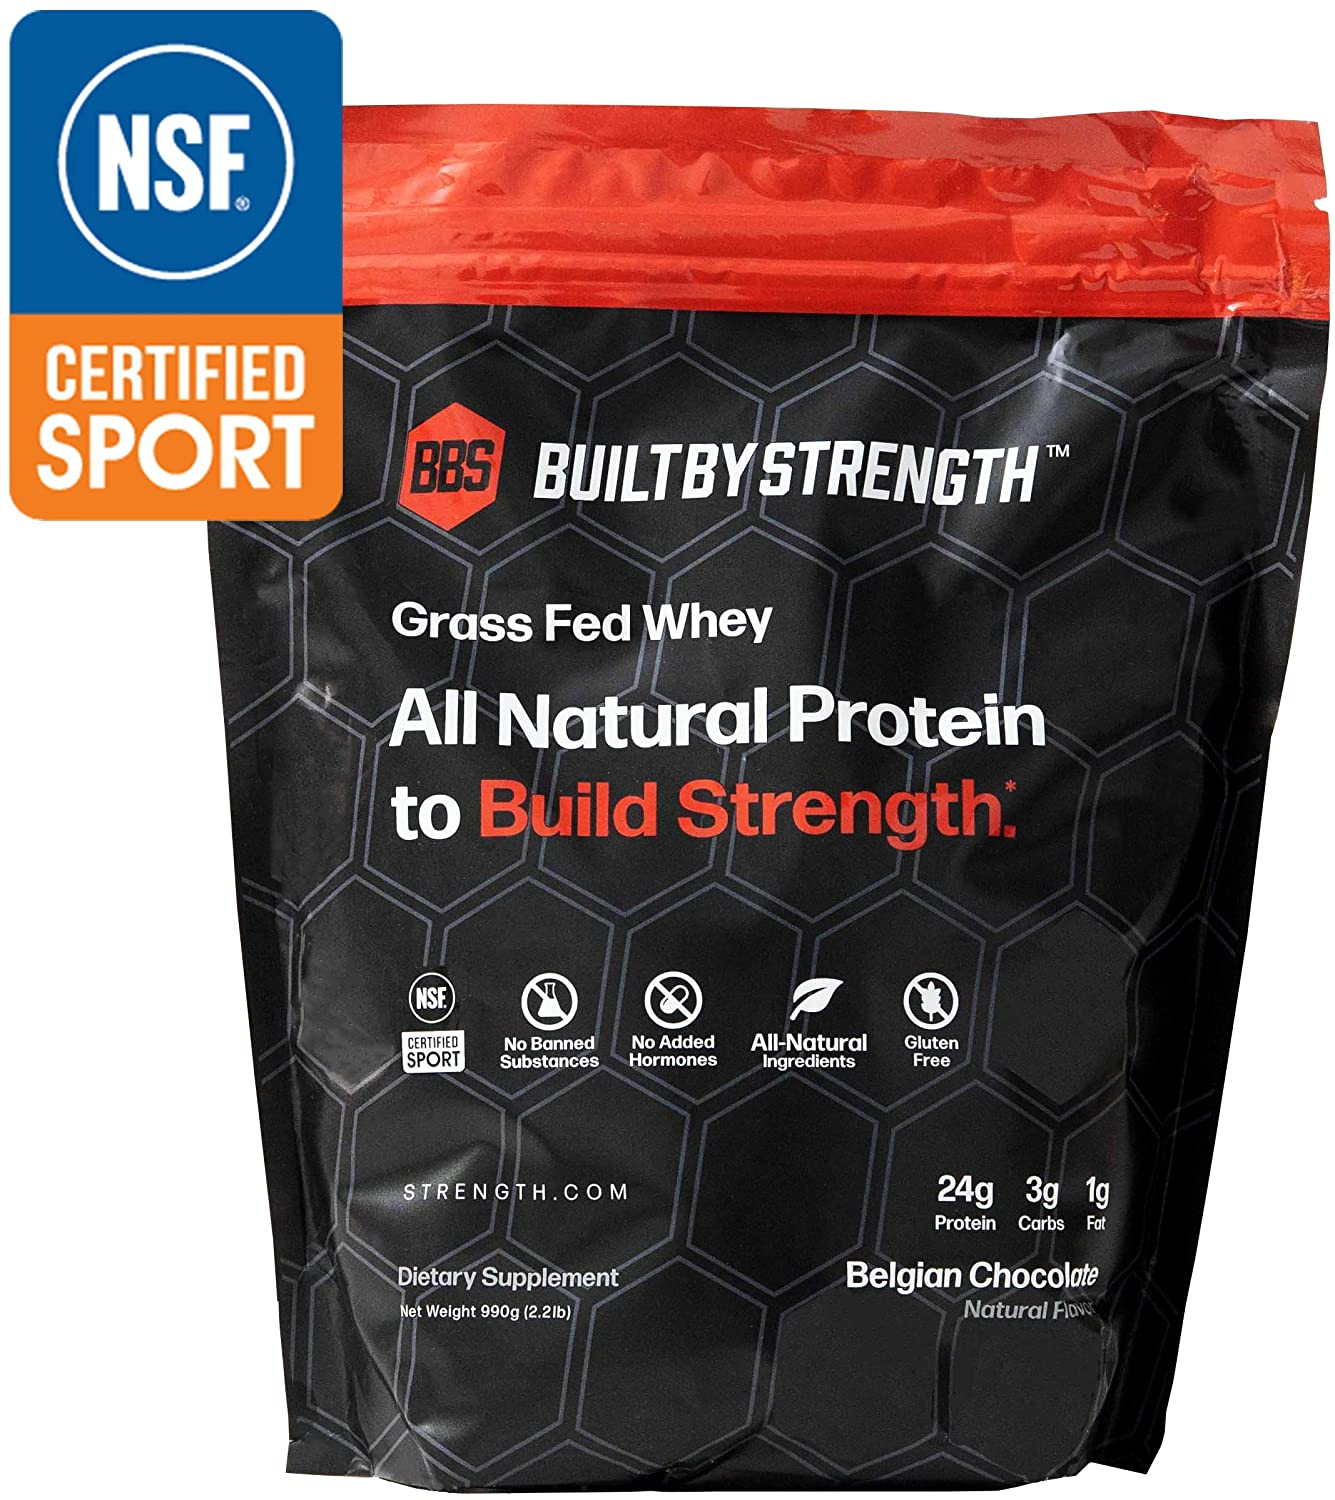 BuiltByStrength Grass Fed Whey Protein – NSF Certified All Natural Belgian Chocolate Whey Isolate Protein Powder – Tastes Great and Dissolves Easily in Coffee – Non GMO and Gluten Free 30 Servings